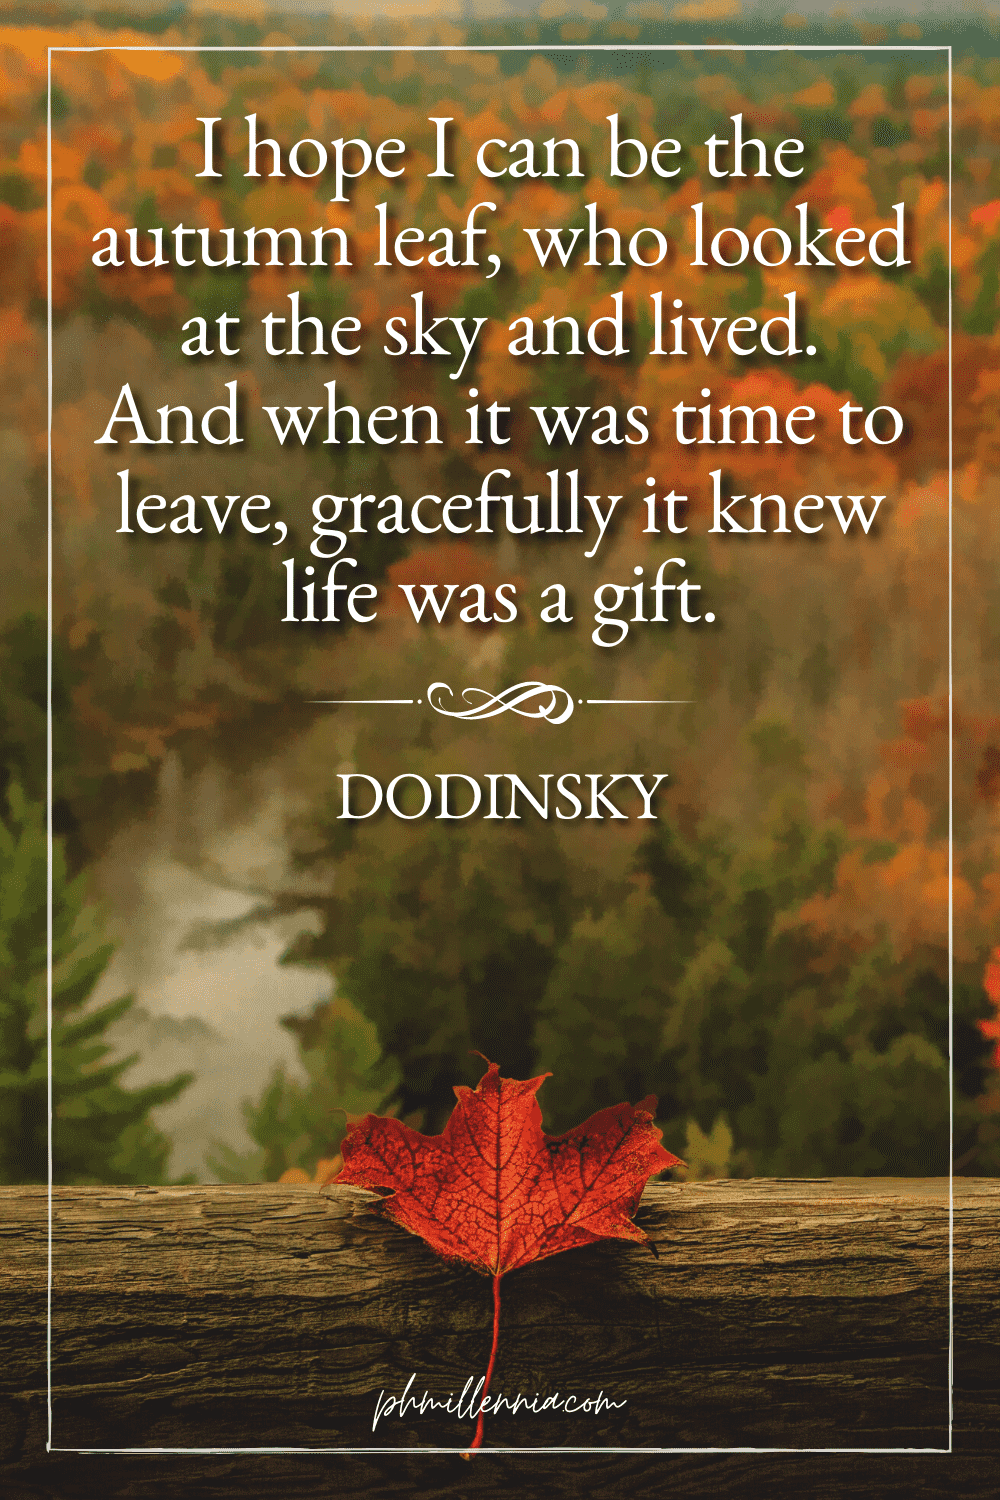 A graphic featuring an autumn quote/fall saying over an image of a single red autumn/fall leaf on a wooden beam, backdropped by a forest/woodland landscape in autumn/fall colors